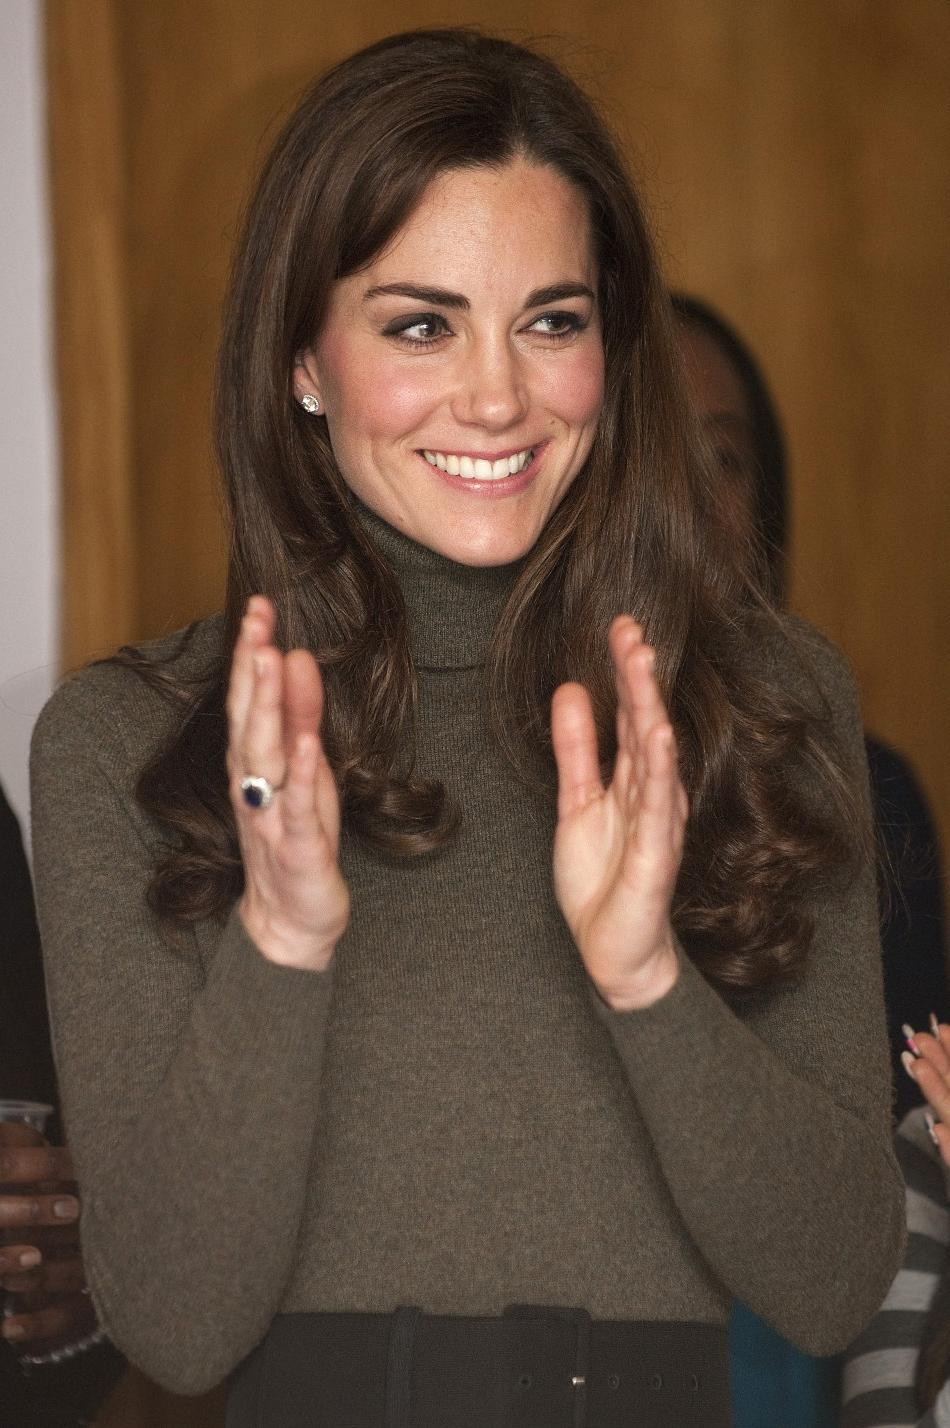 Kate Middleton, the Duchess of